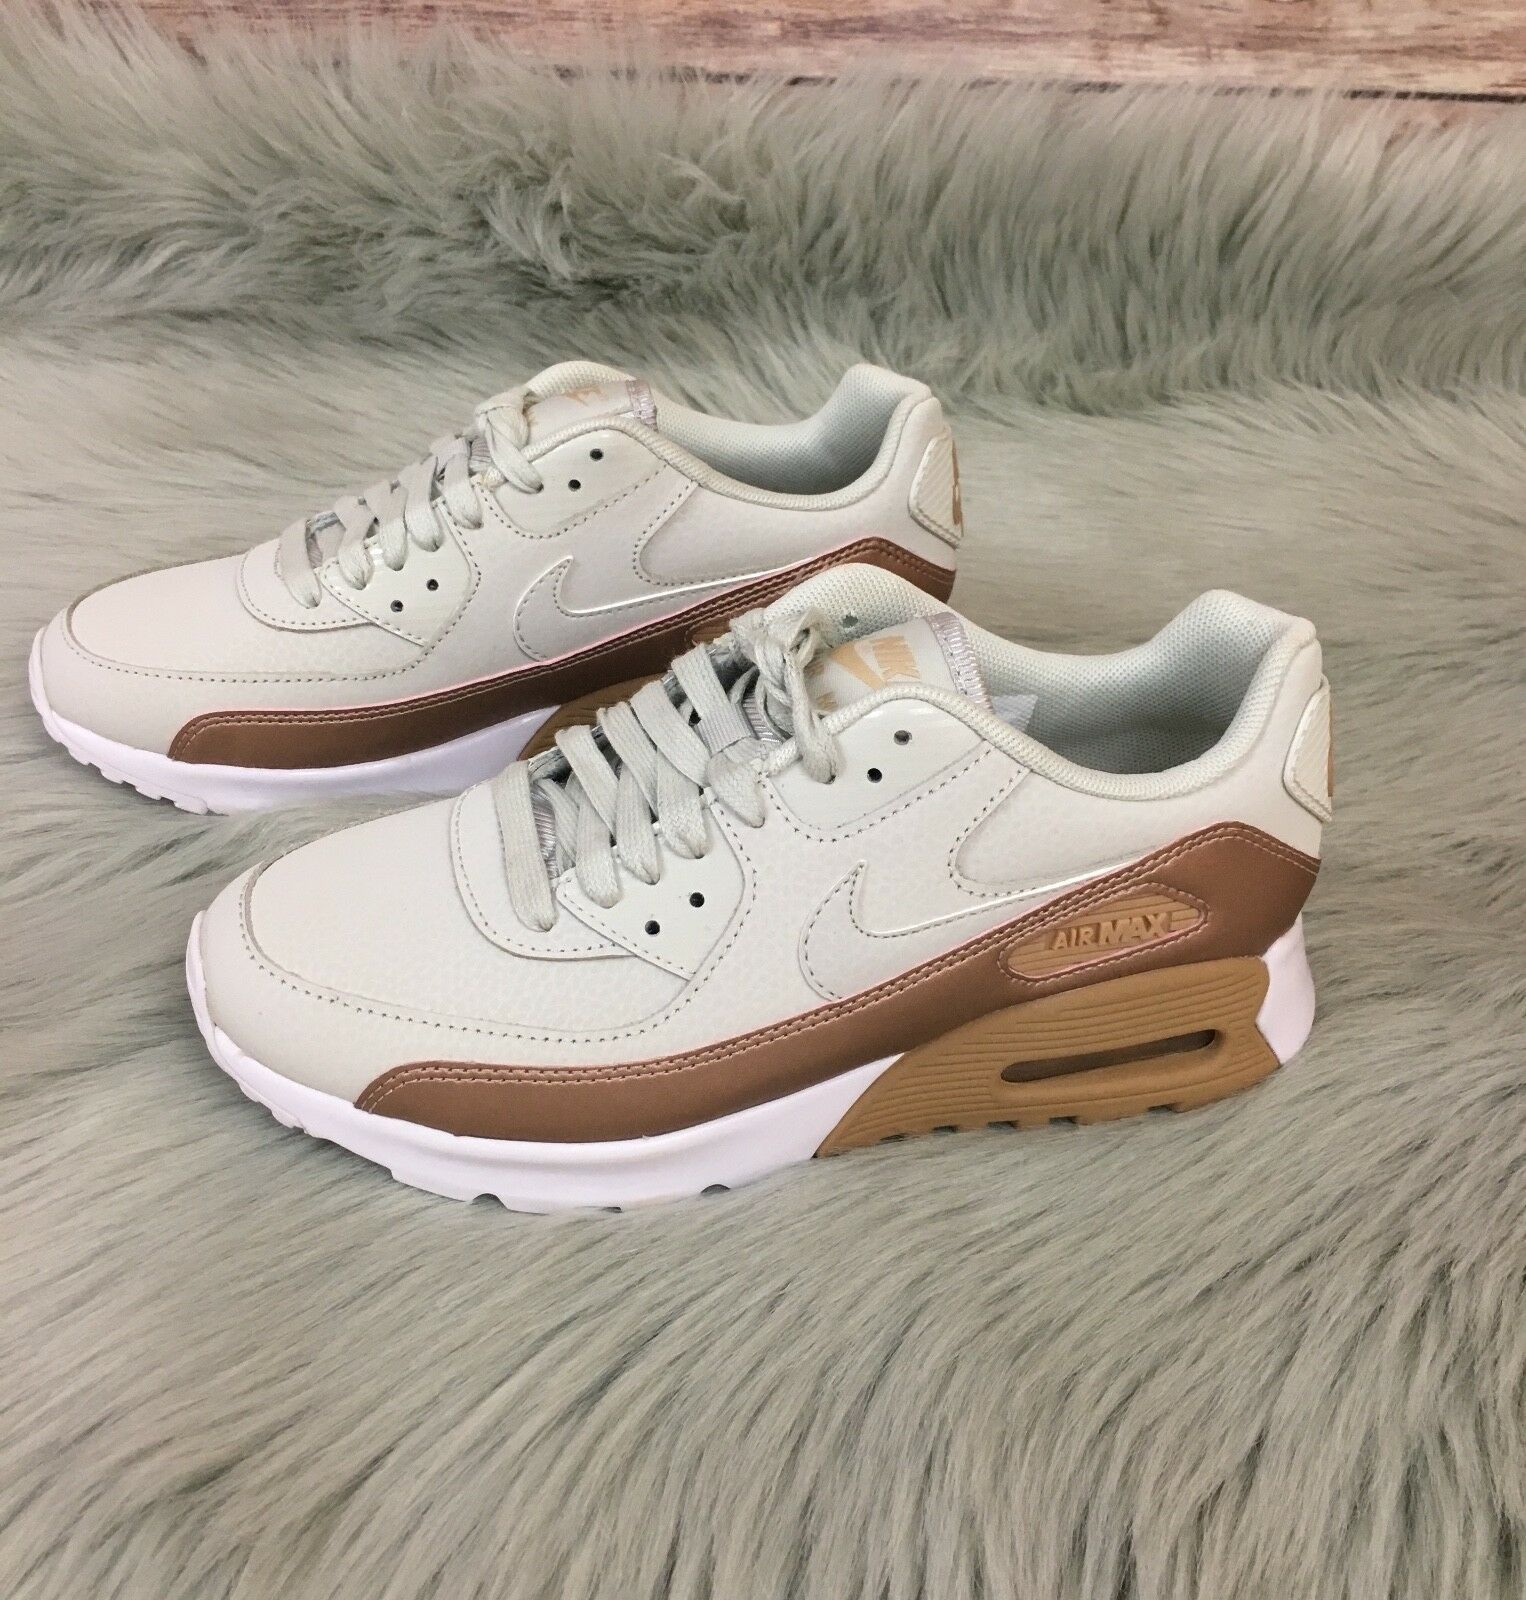 New Nike Air Max 90 Ultra SE (Size 6.5)